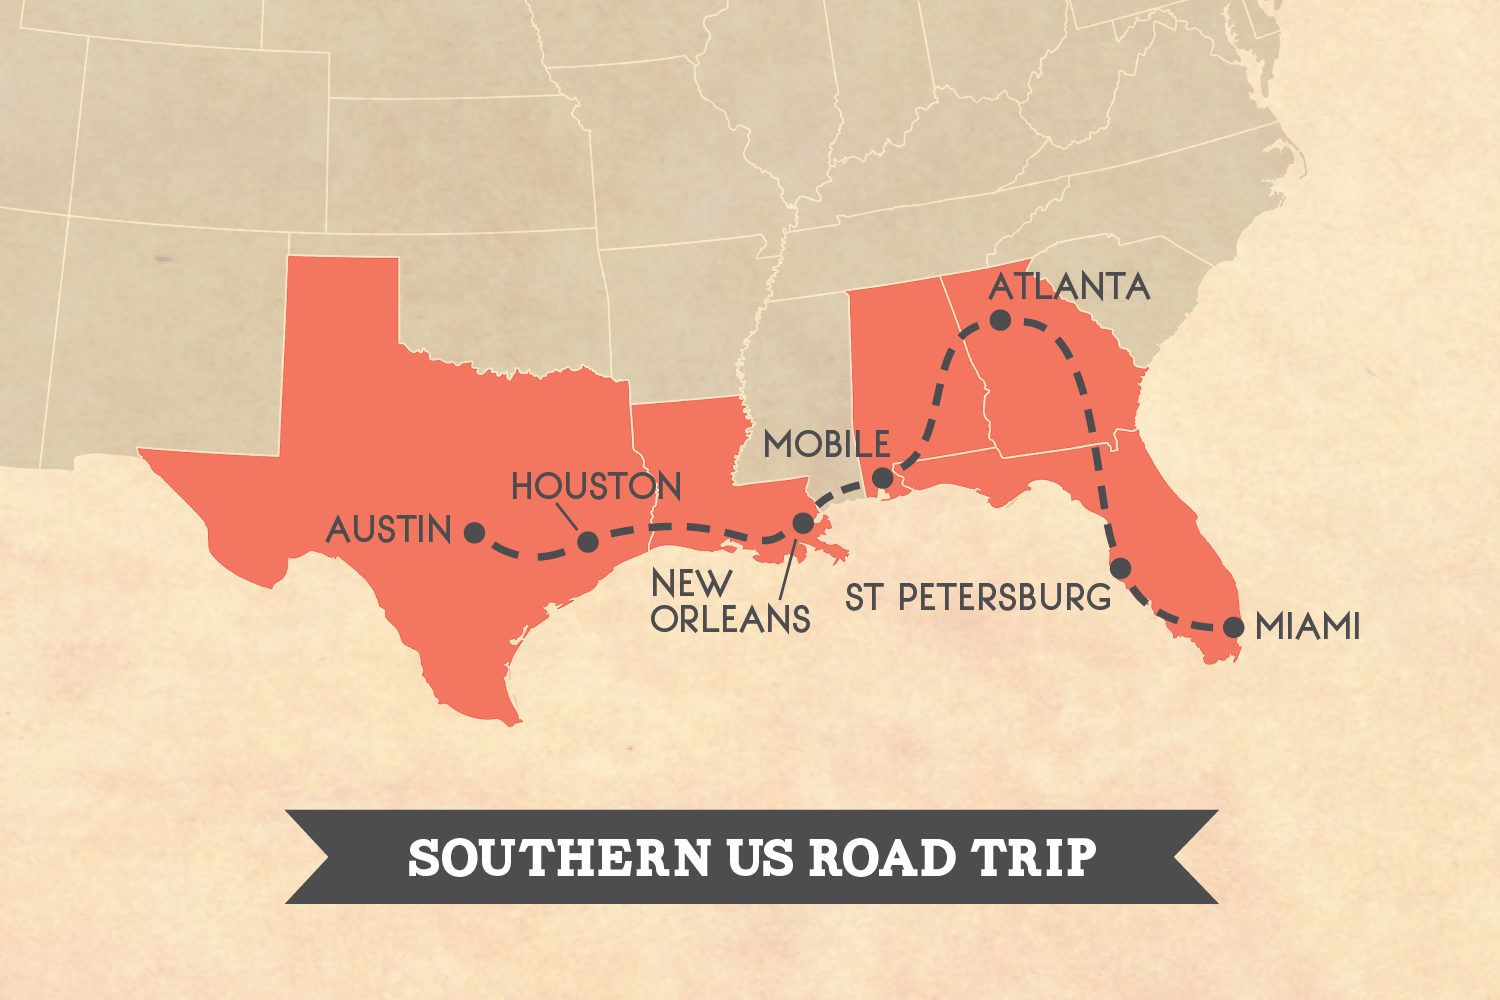 Southern US road trip map